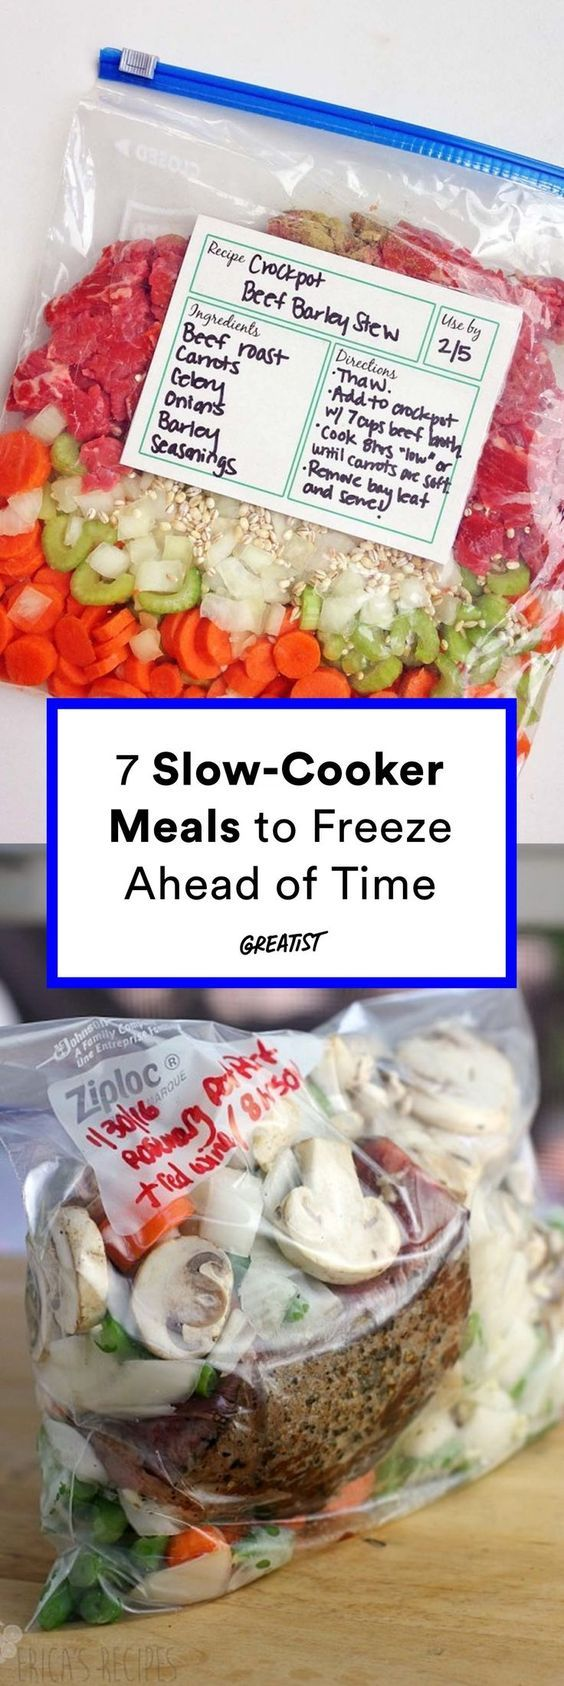 Make-ahead slow cooker meals to freeze. #greatist http://greatist.com/eat/slow-cooker-recipes-you-can-make-ahead-of-time